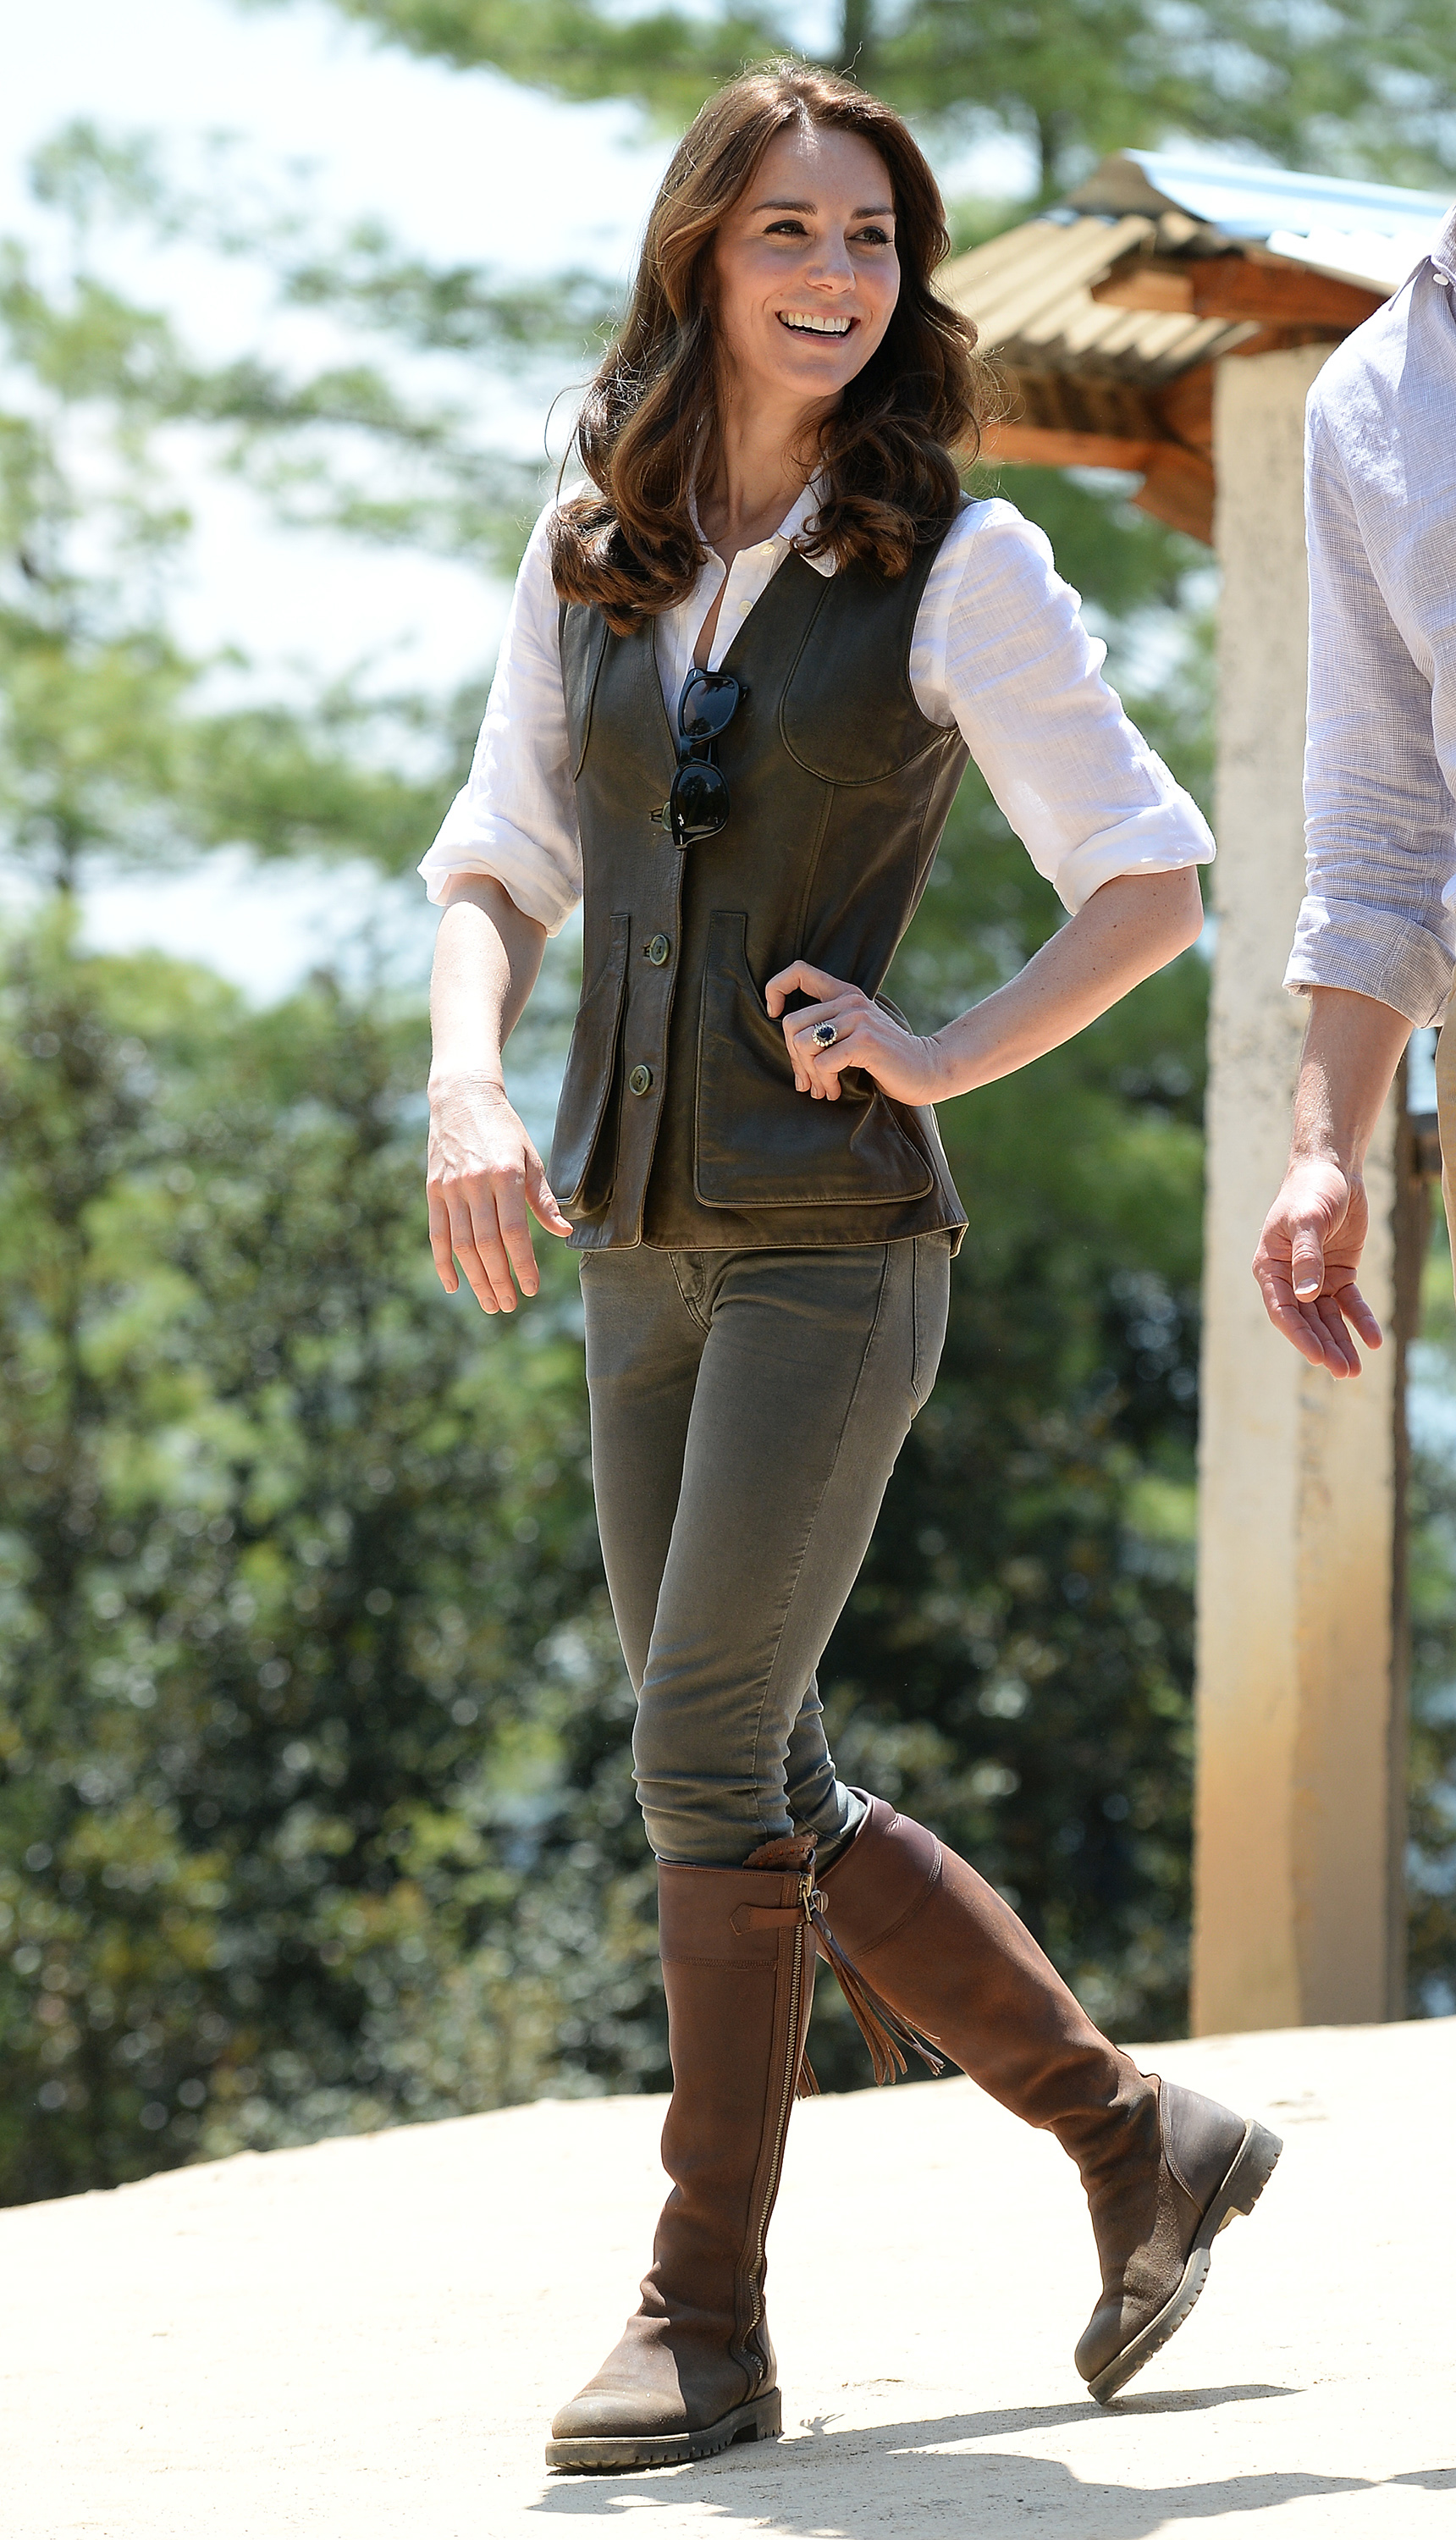 aa855e2475e Kate Middleton's Favorite Boots: Duchess Rewears 14-Year-Old Boots ...